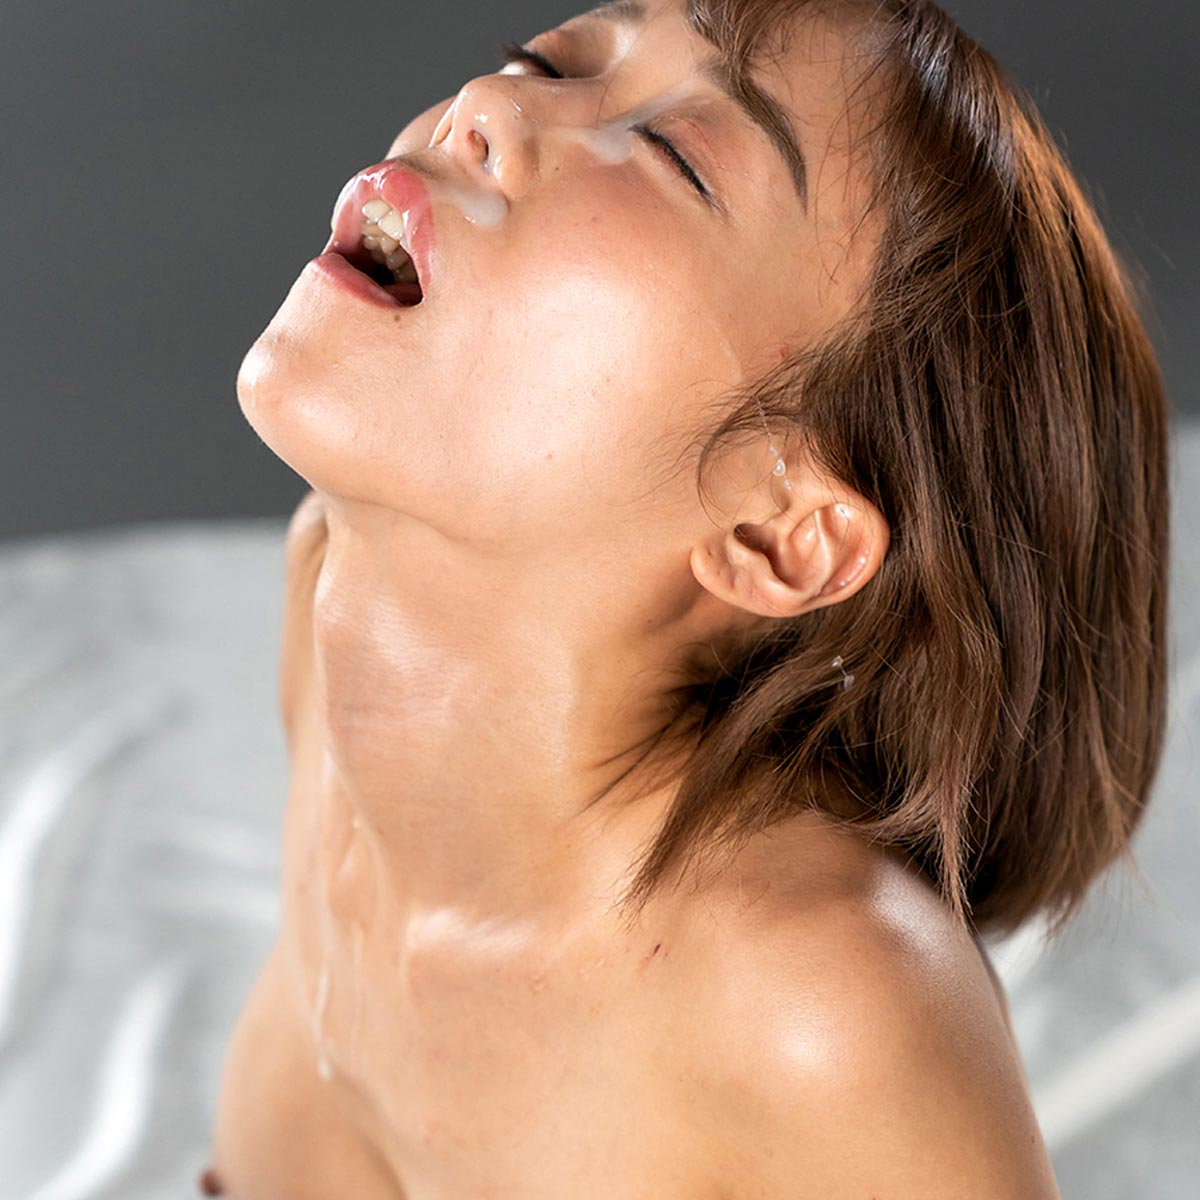 Nanako Nanahara at Fellatio Japan. She receives a Facial Cumshot in an uncensored Blowjob video at FellatioJapan.